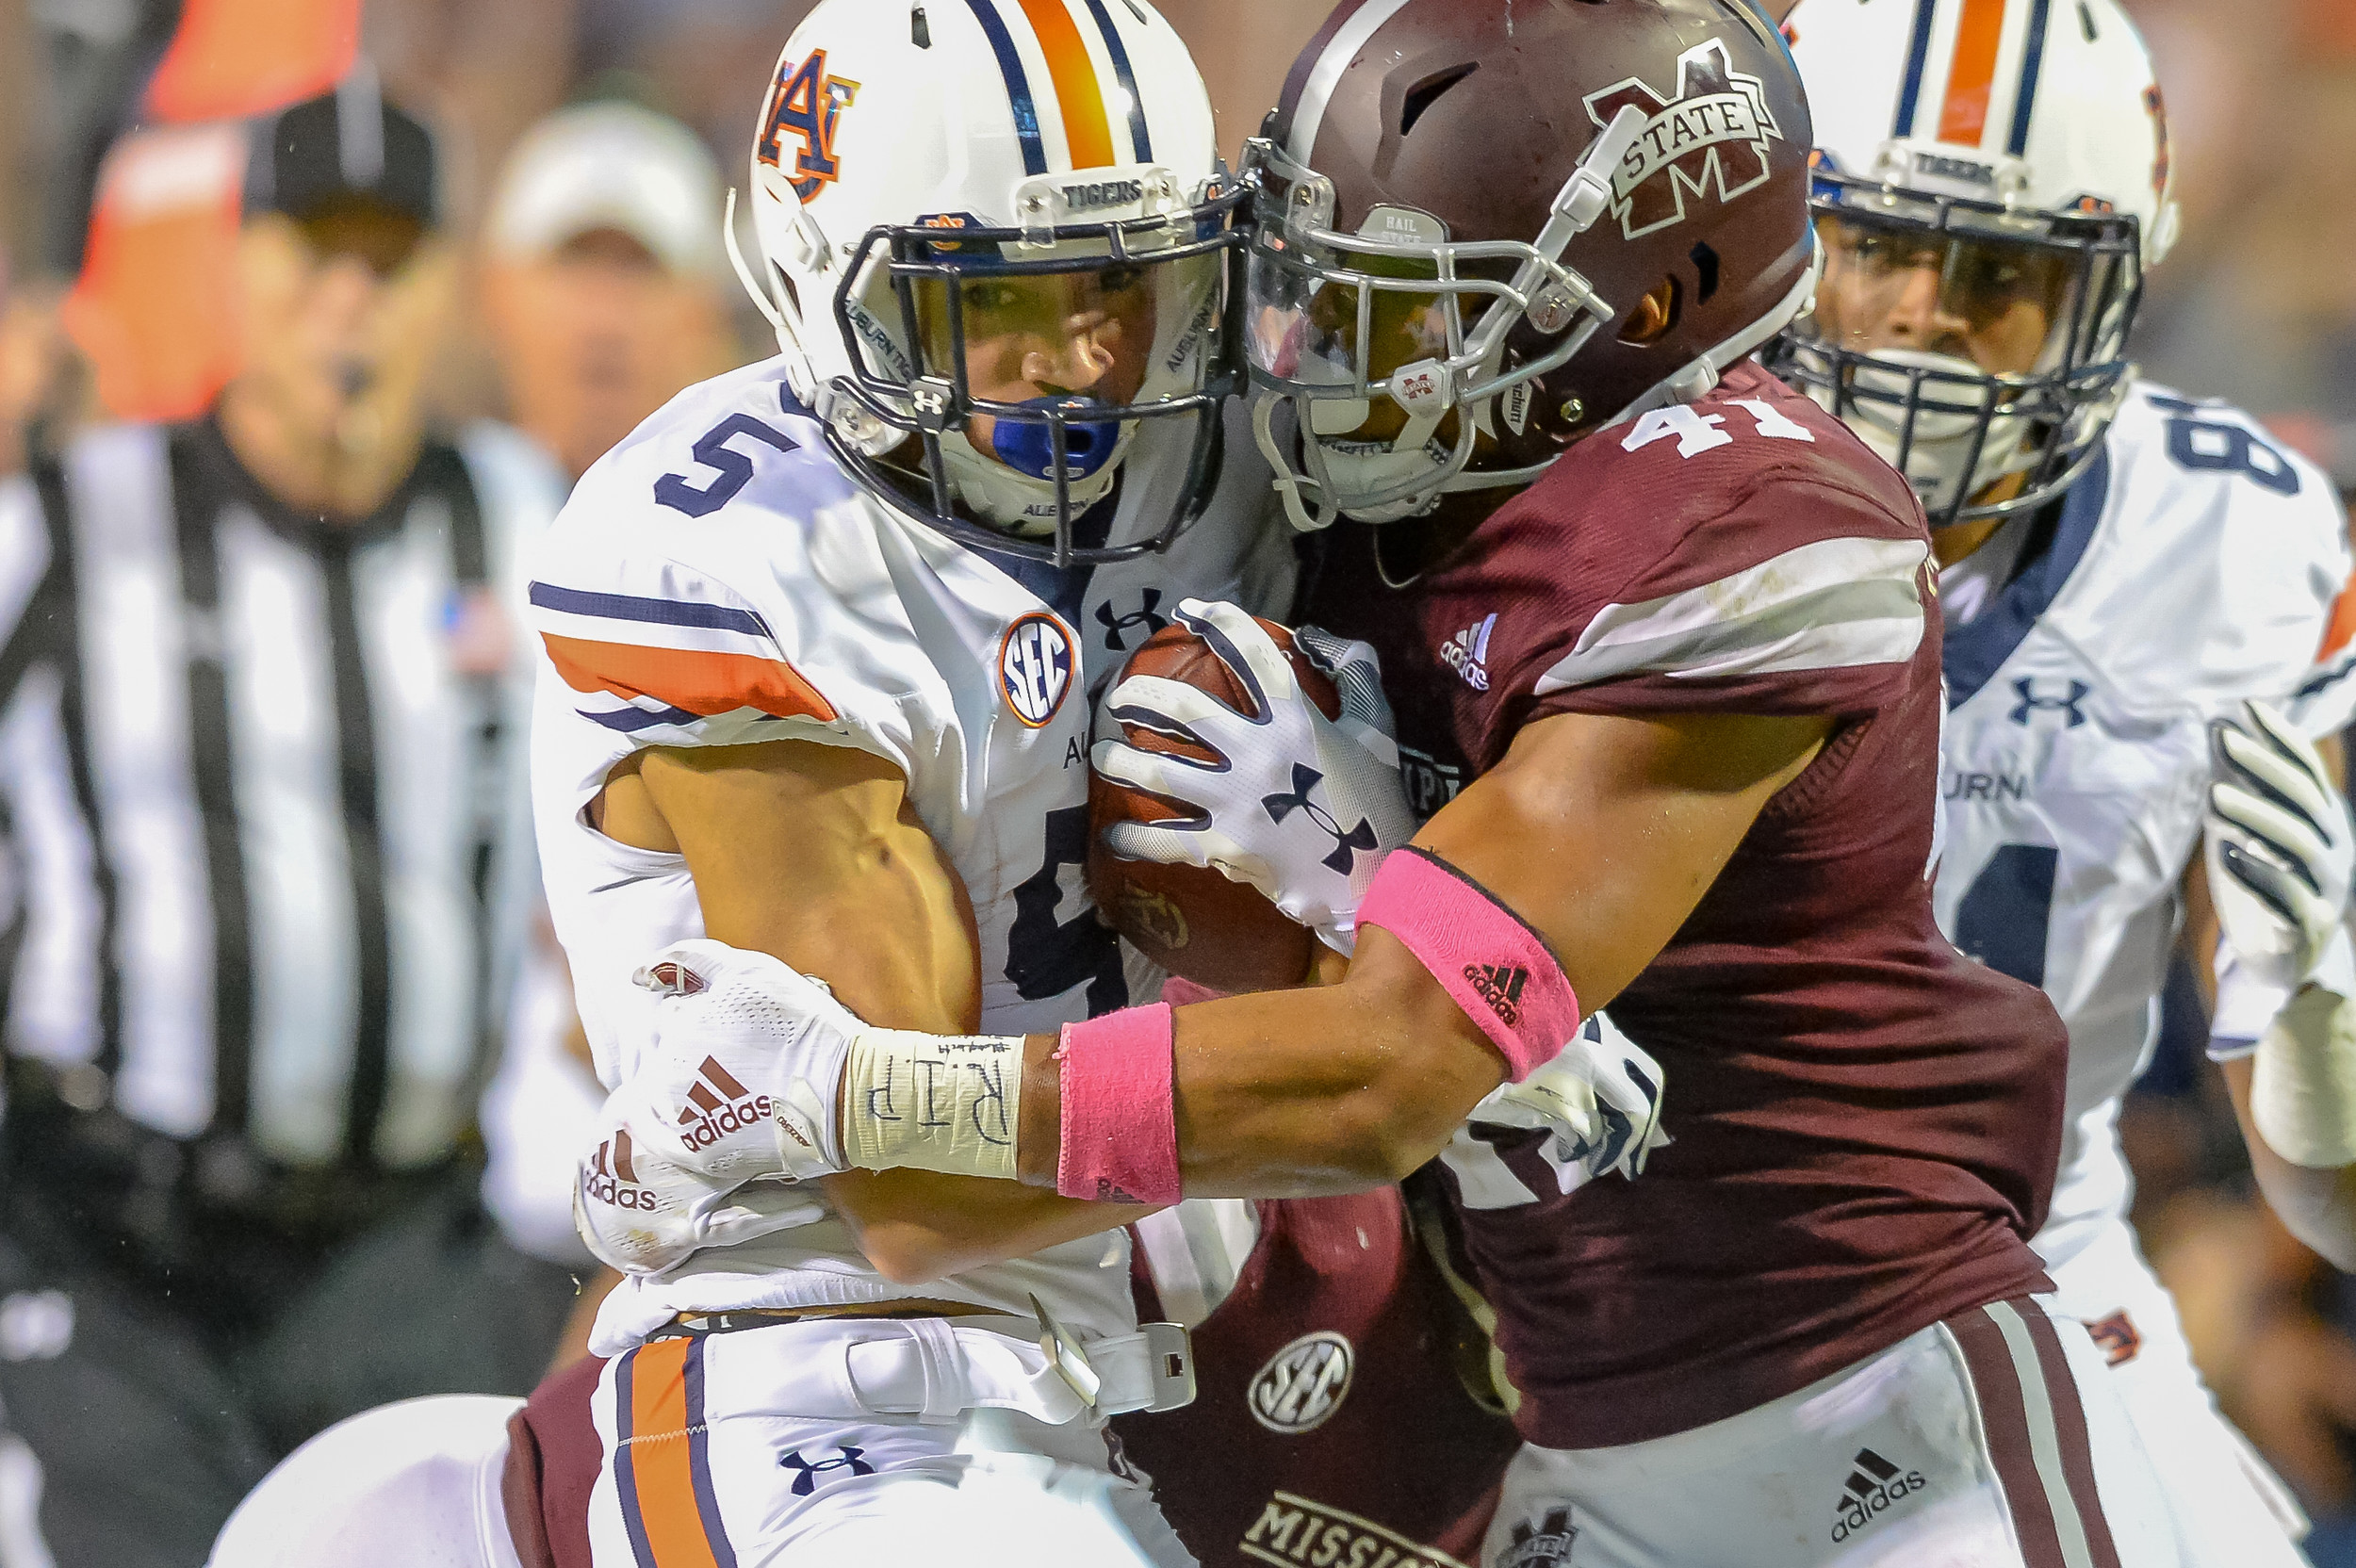 Auburn Tigers wide receiver Anthony Schwartz (5) is brought down by Mississippi State Bulldogs safety Mark McLaurin (41) during the second half of Saturday's game, at Davis Wade Stadium in Starkville, MS. Daily Mountain Eagle -  Jeff Johnsey